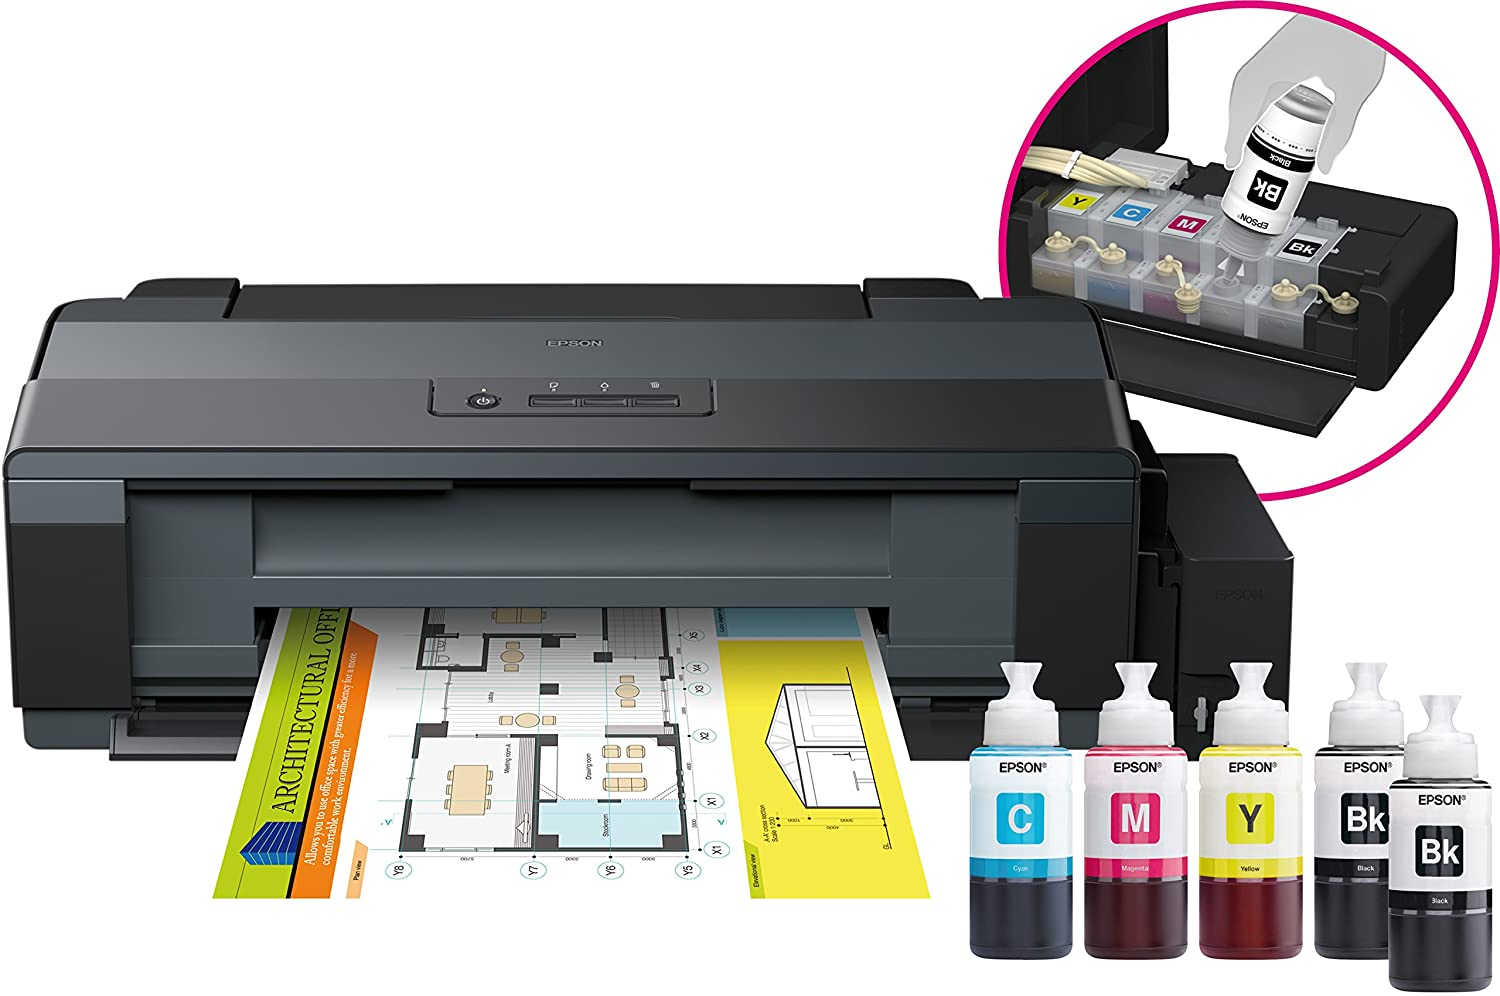 Amazon.com : Epson Ecotank Et-14000 A3 ink 30 ppm : Office ...